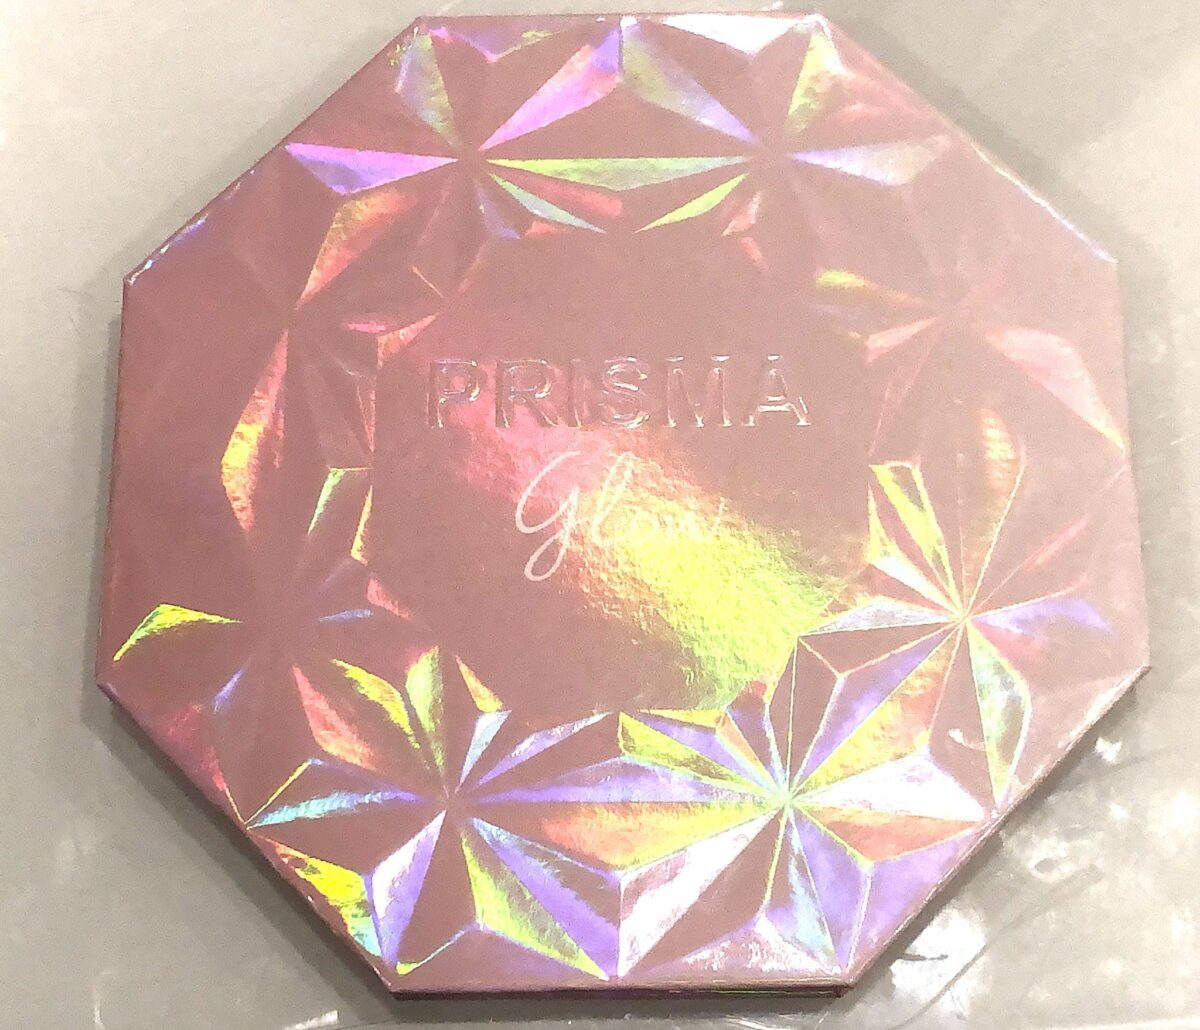 THE PRISMA GLOW HIGHLIGHTER PALETTE OUTER BOX